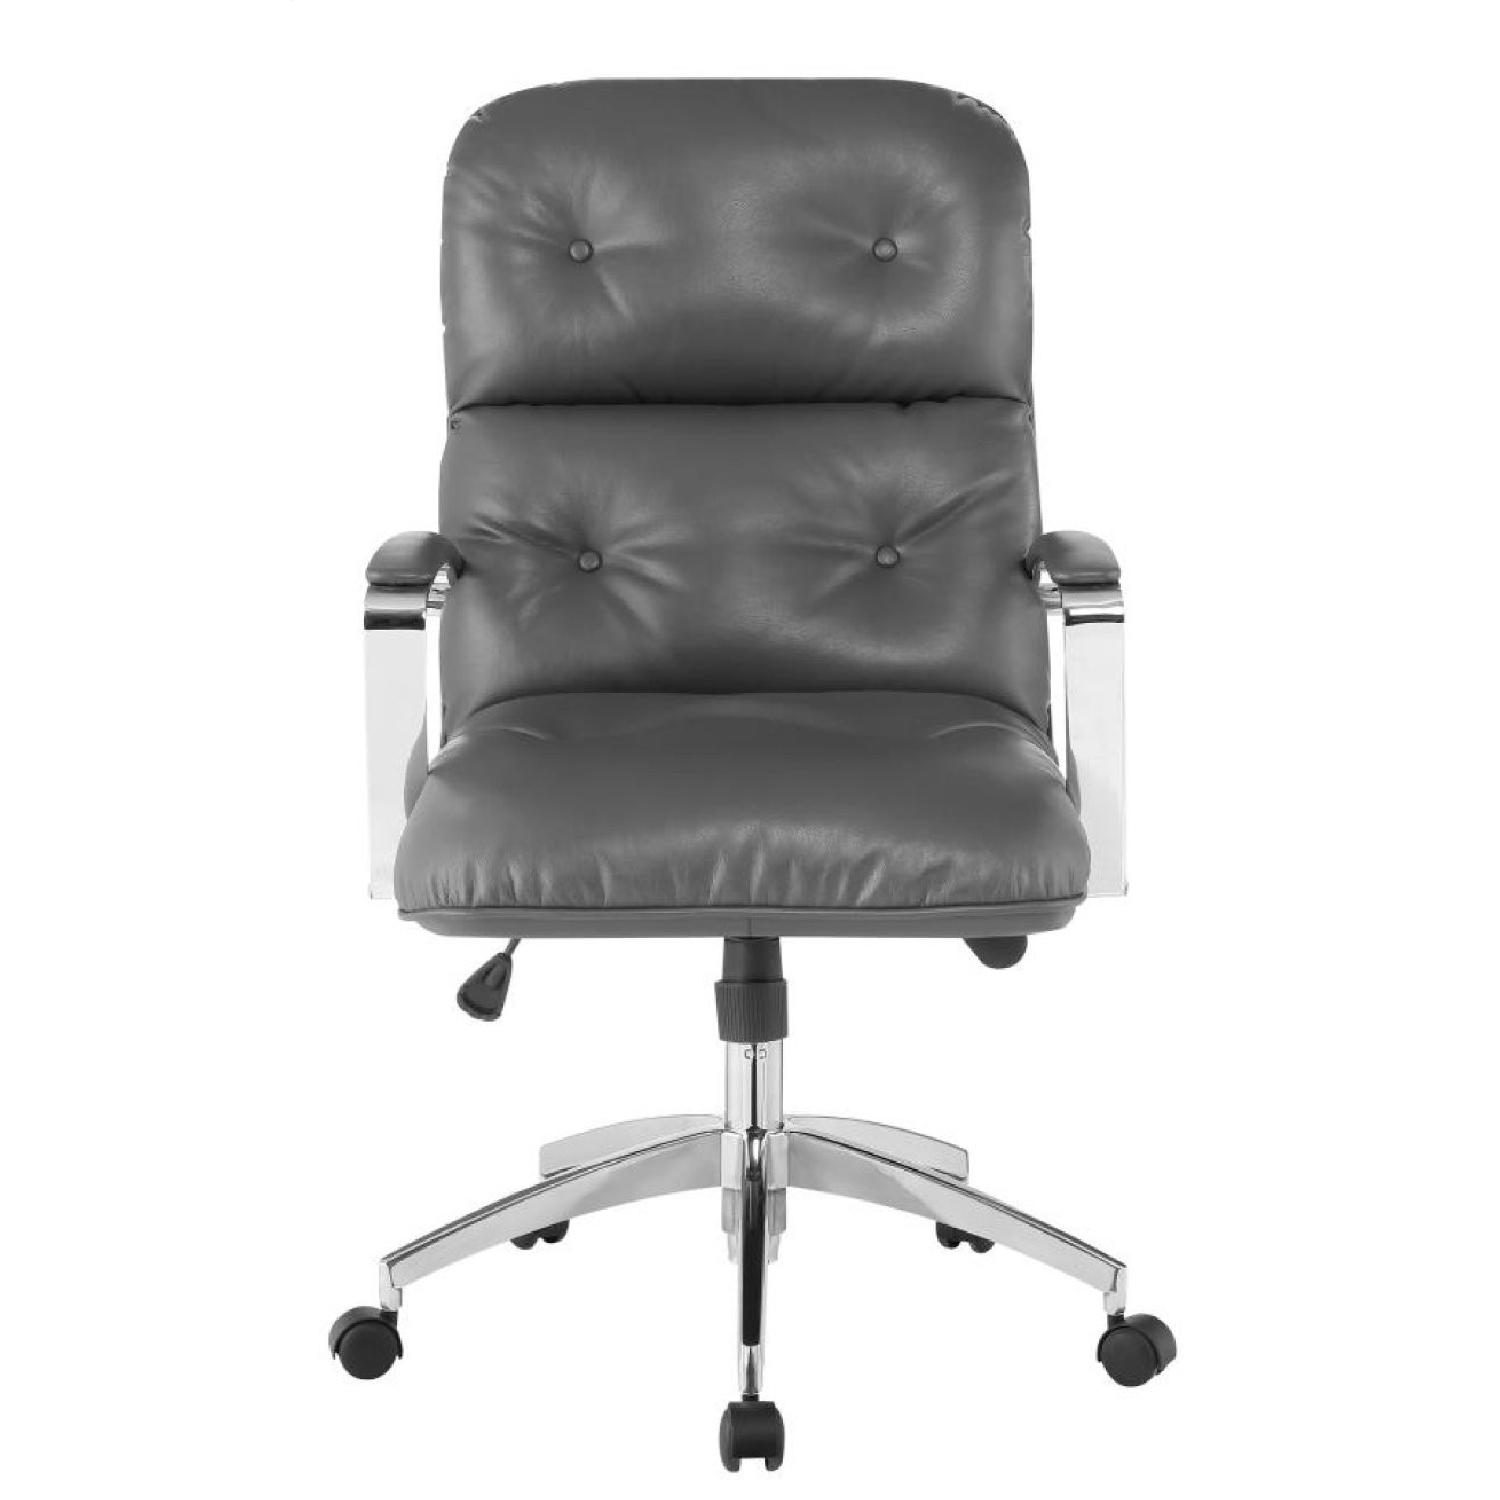 Modern Office Chair in Grey Leatherette w/ Chrome Base - image-3